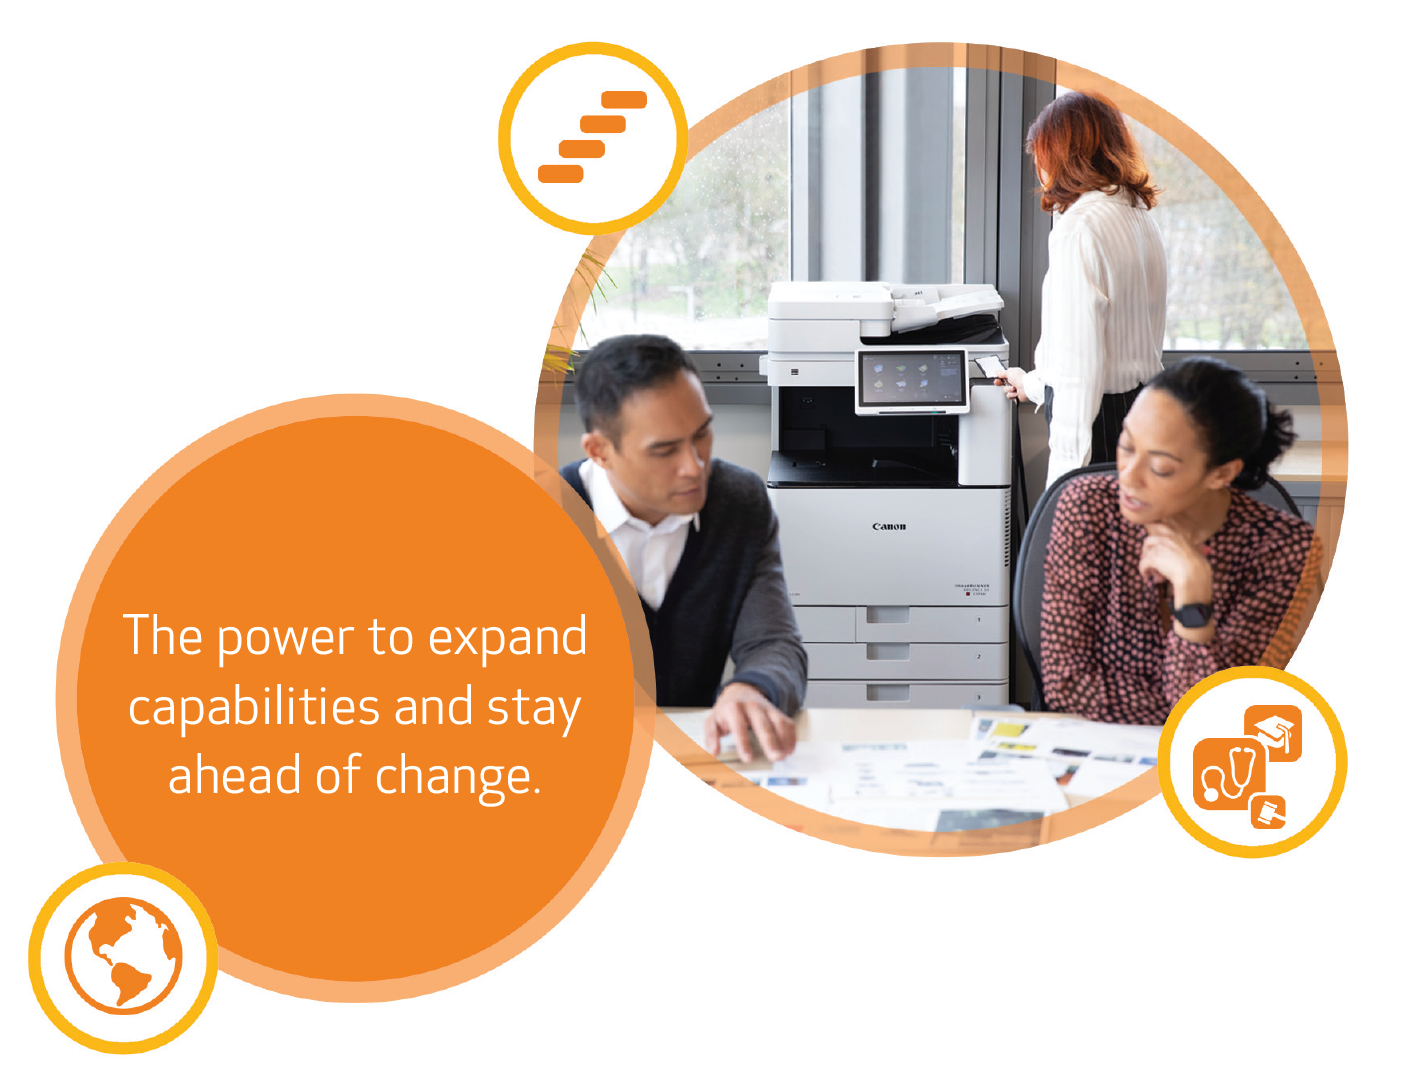 Evolve. The power to expand to capabilities and stay ahead of change.